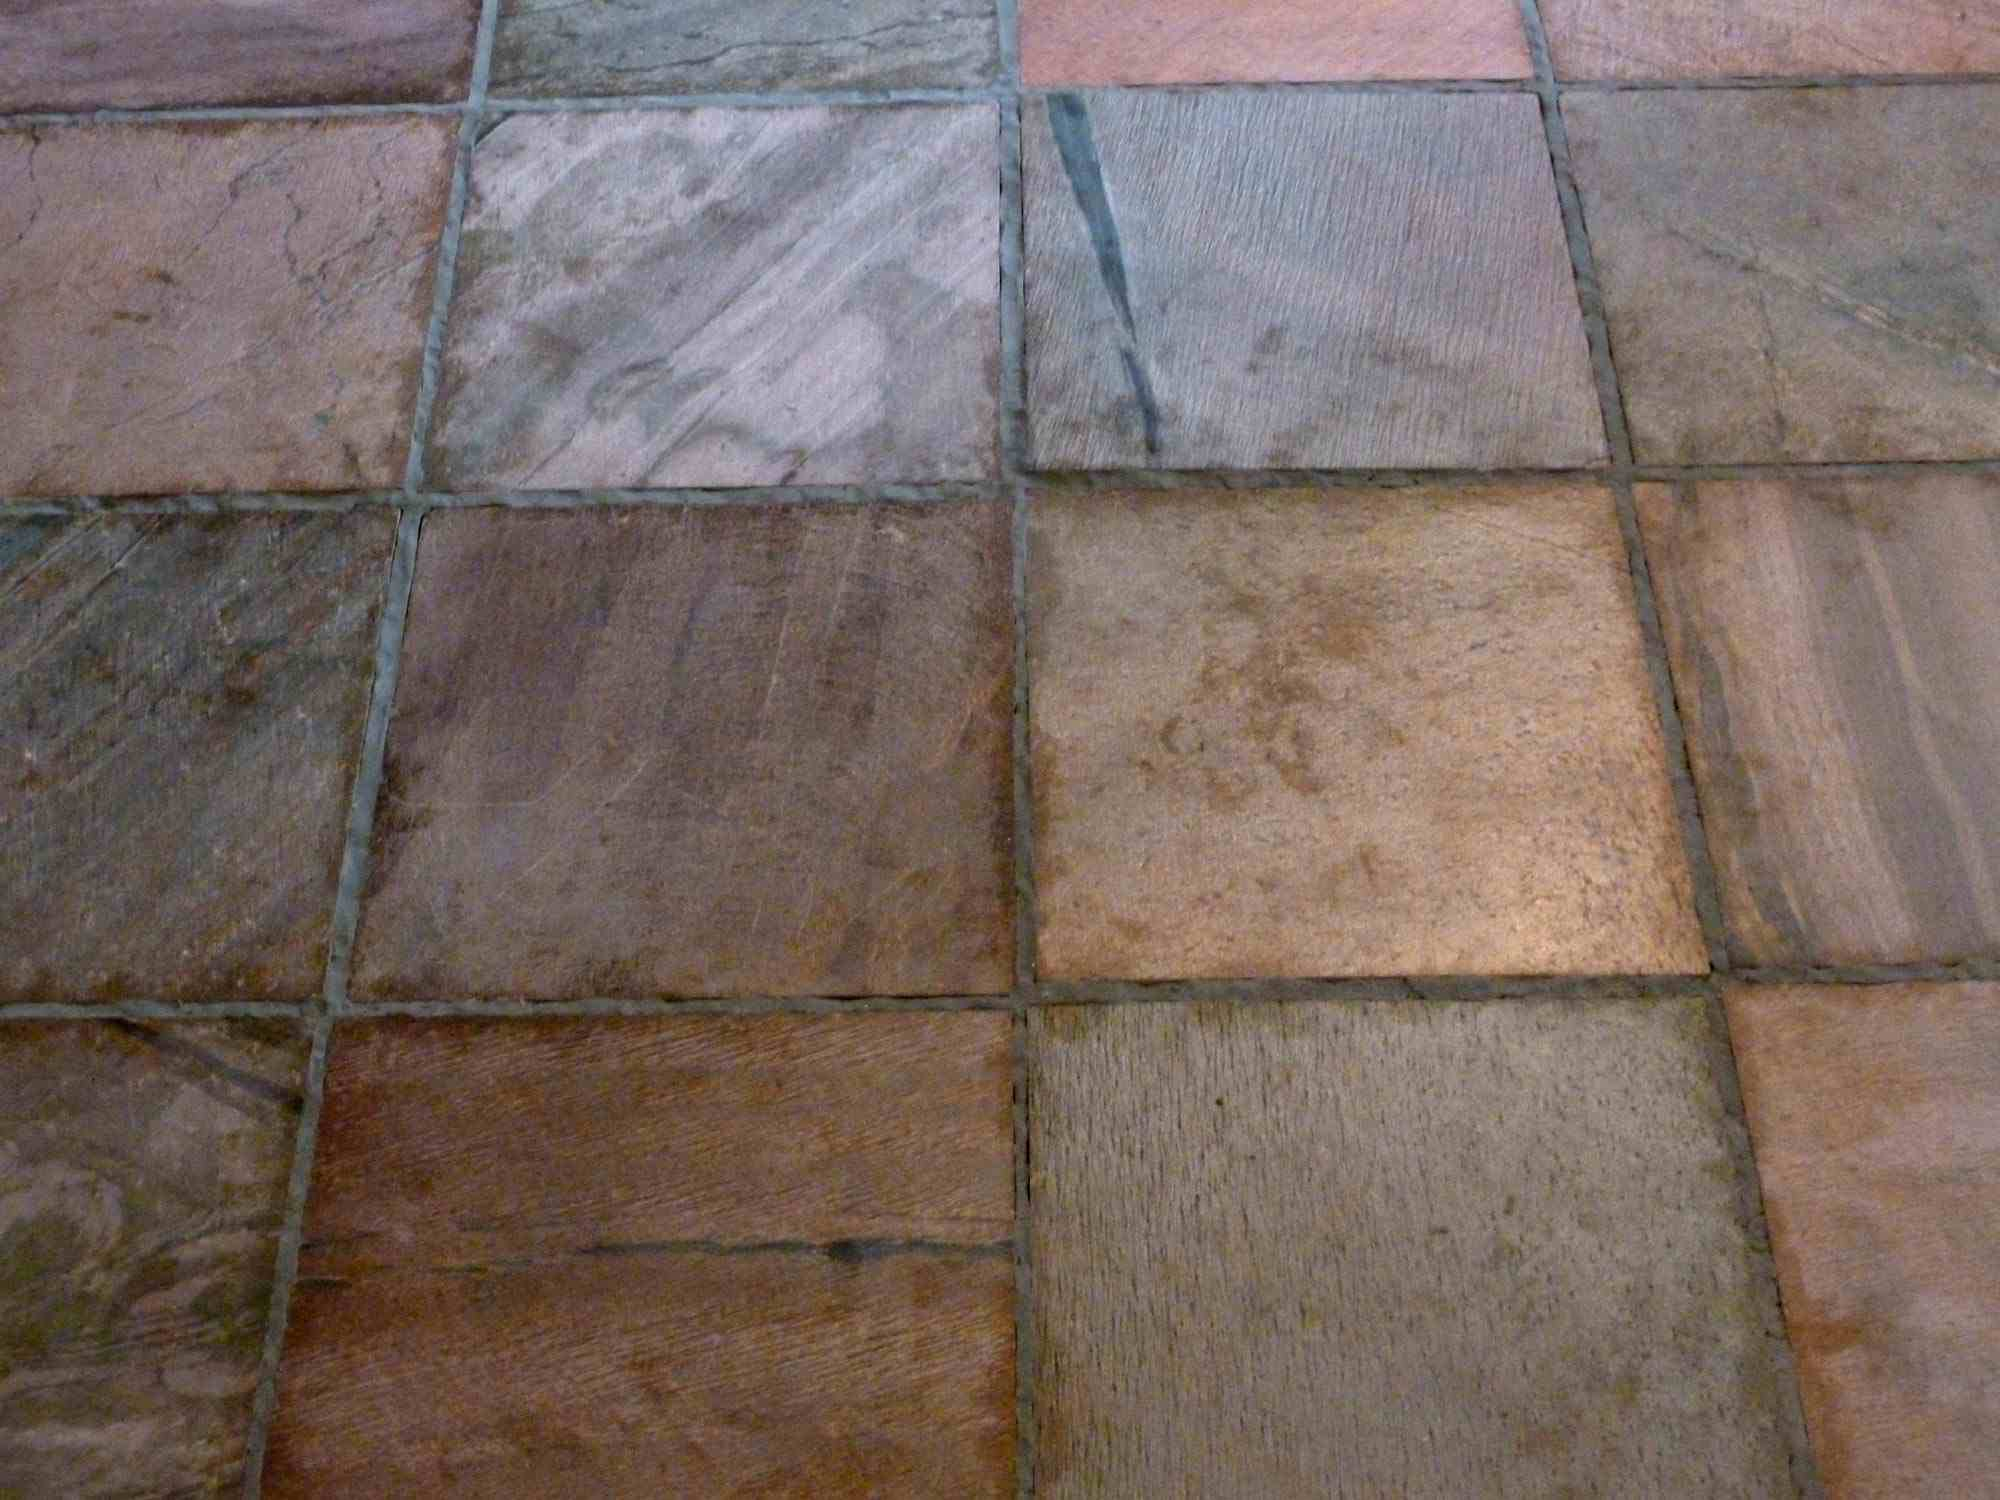 polishing slate after southampton tile restoration tag flooring cleaning tips stone and tiled floor floors for